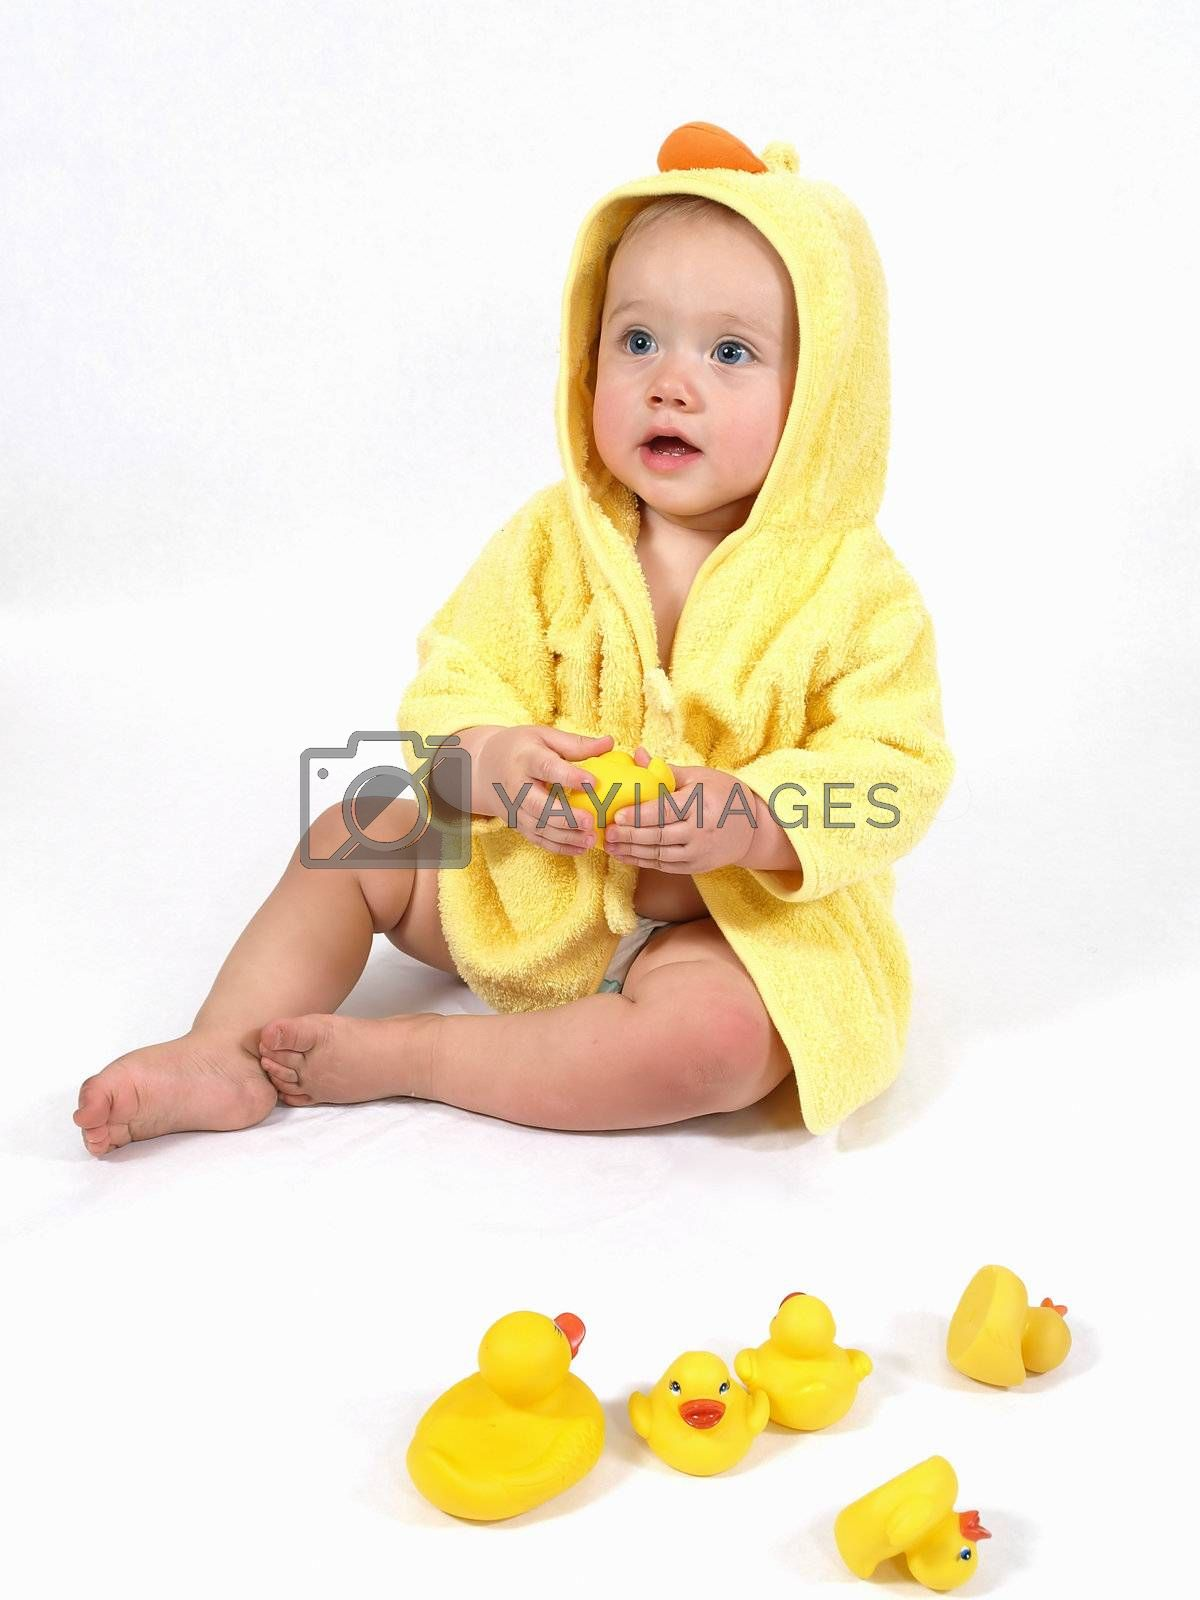 A baby girl in a yellow duck bathrobe holds a plastic toy rubber duck.